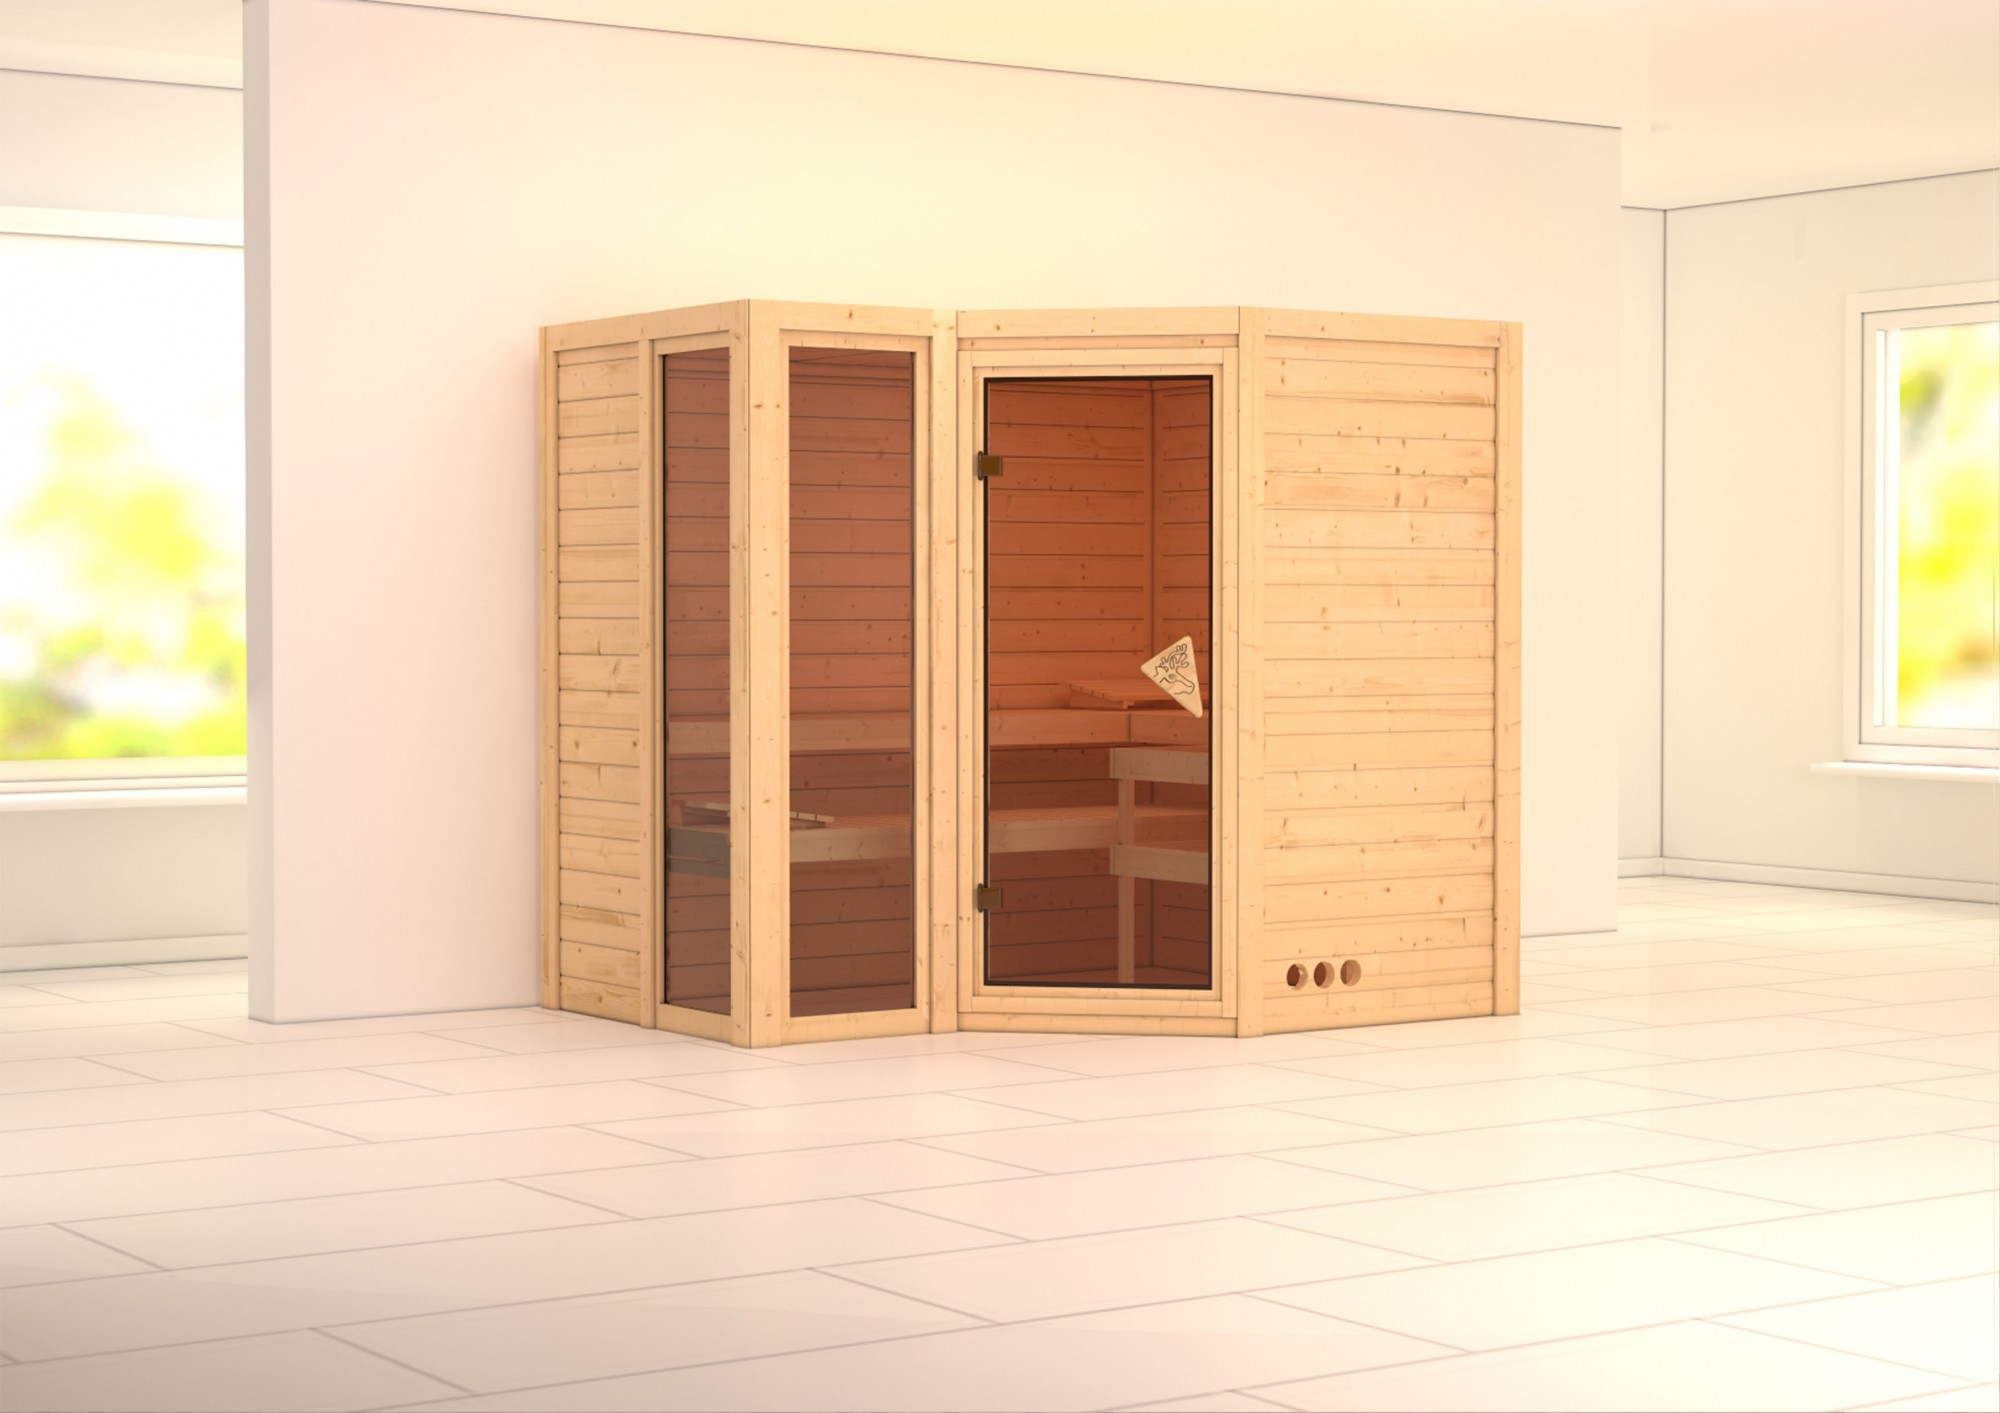 karibu massiv sauna amara eckeinstieg 40 mm mit dachkranz ohne zubeh r. Black Bedroom Furniture Sets. Home Design Ideas